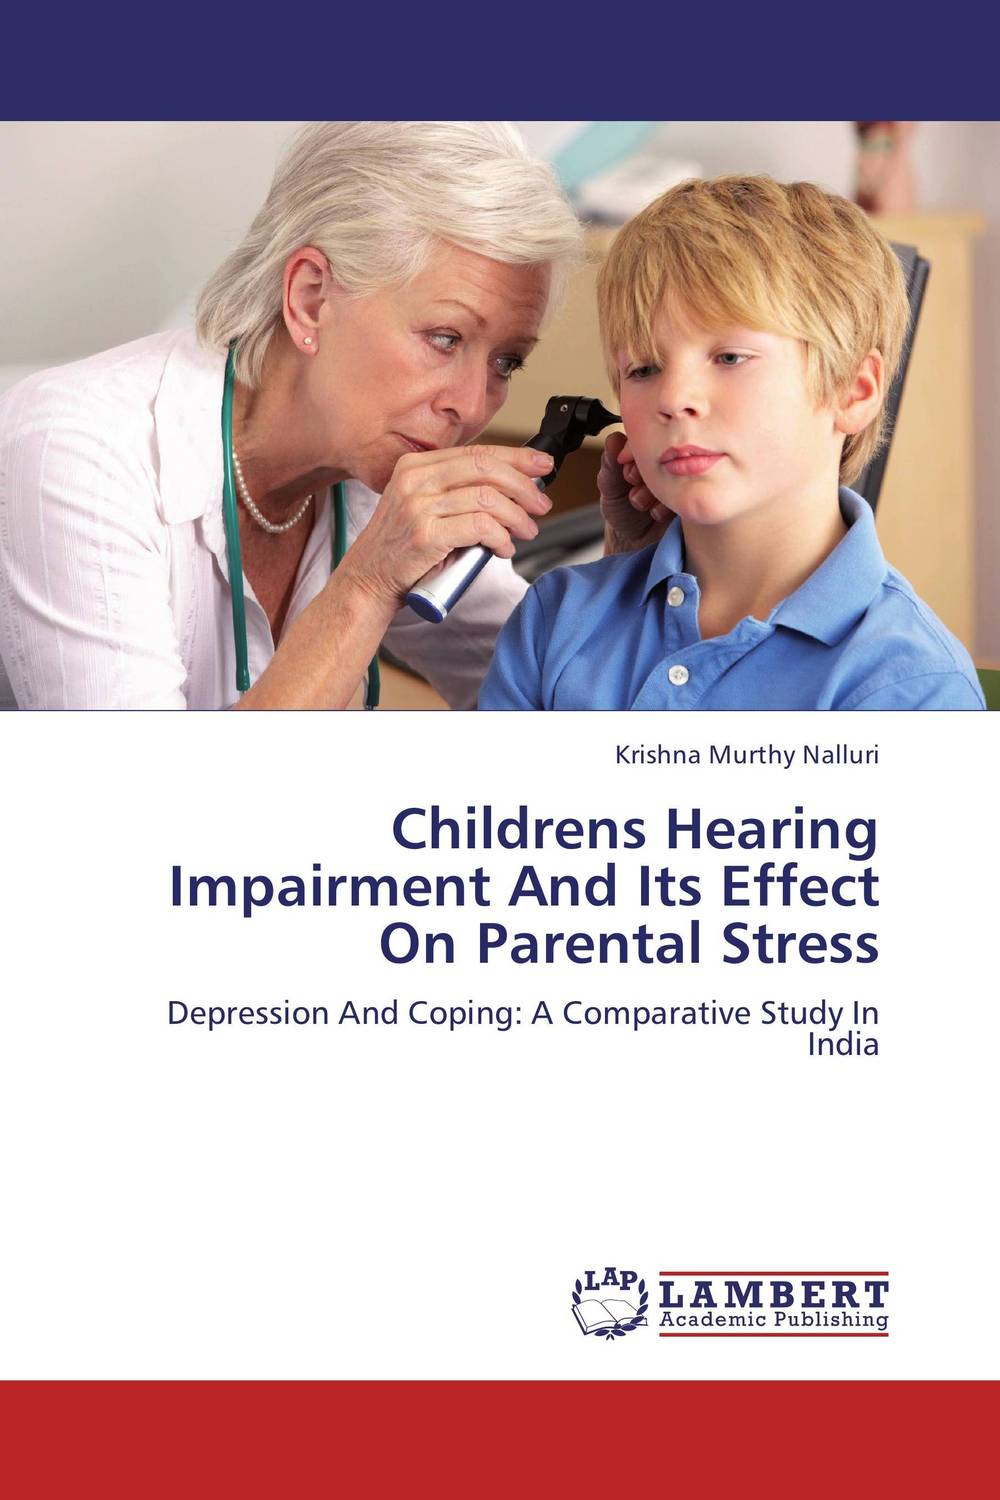 Childrens Hearing Impairment And Its Effect On Parental Stress epilepsy in children psychological concerns